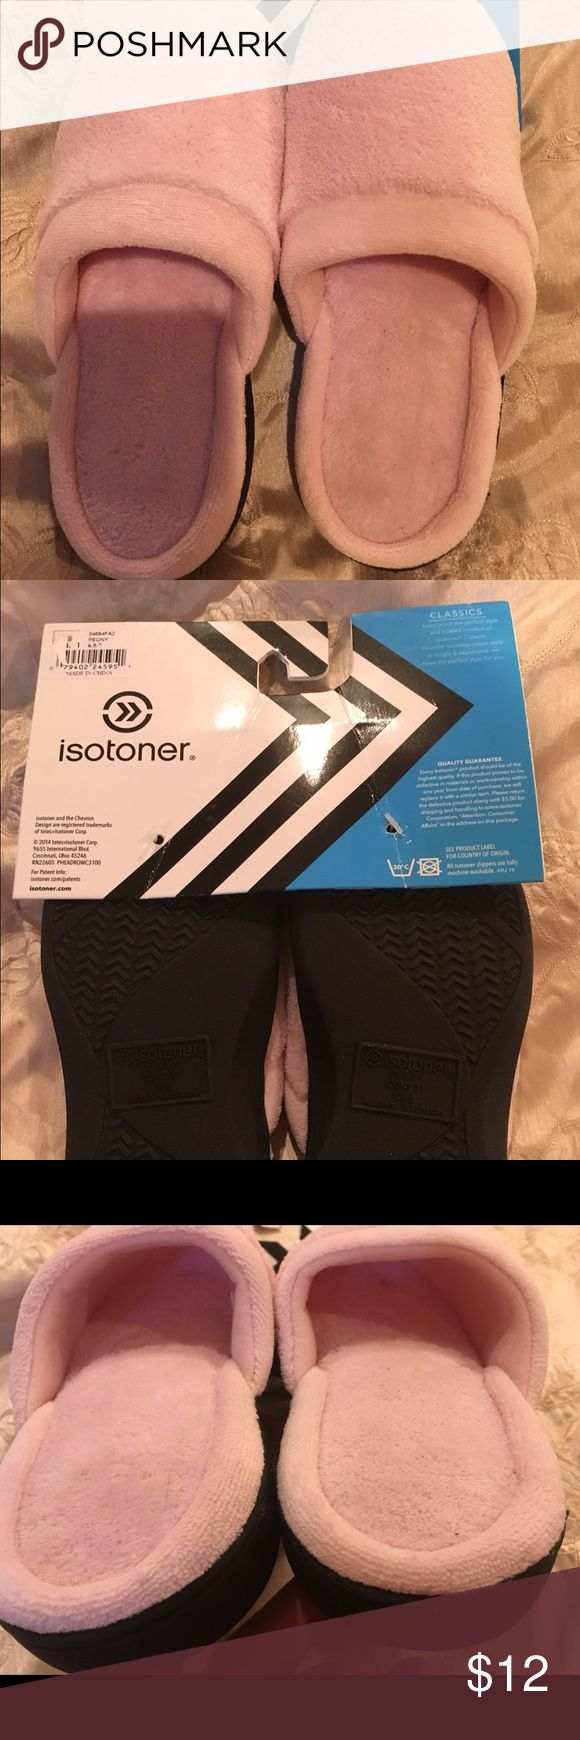 Women's Isotoner Slippers Brand new, never worn (just tried on by Mom but they were too small and it's too late to return Christmas presents) size 6.5-7. Machine washable. Isotoner Shoes Slippers